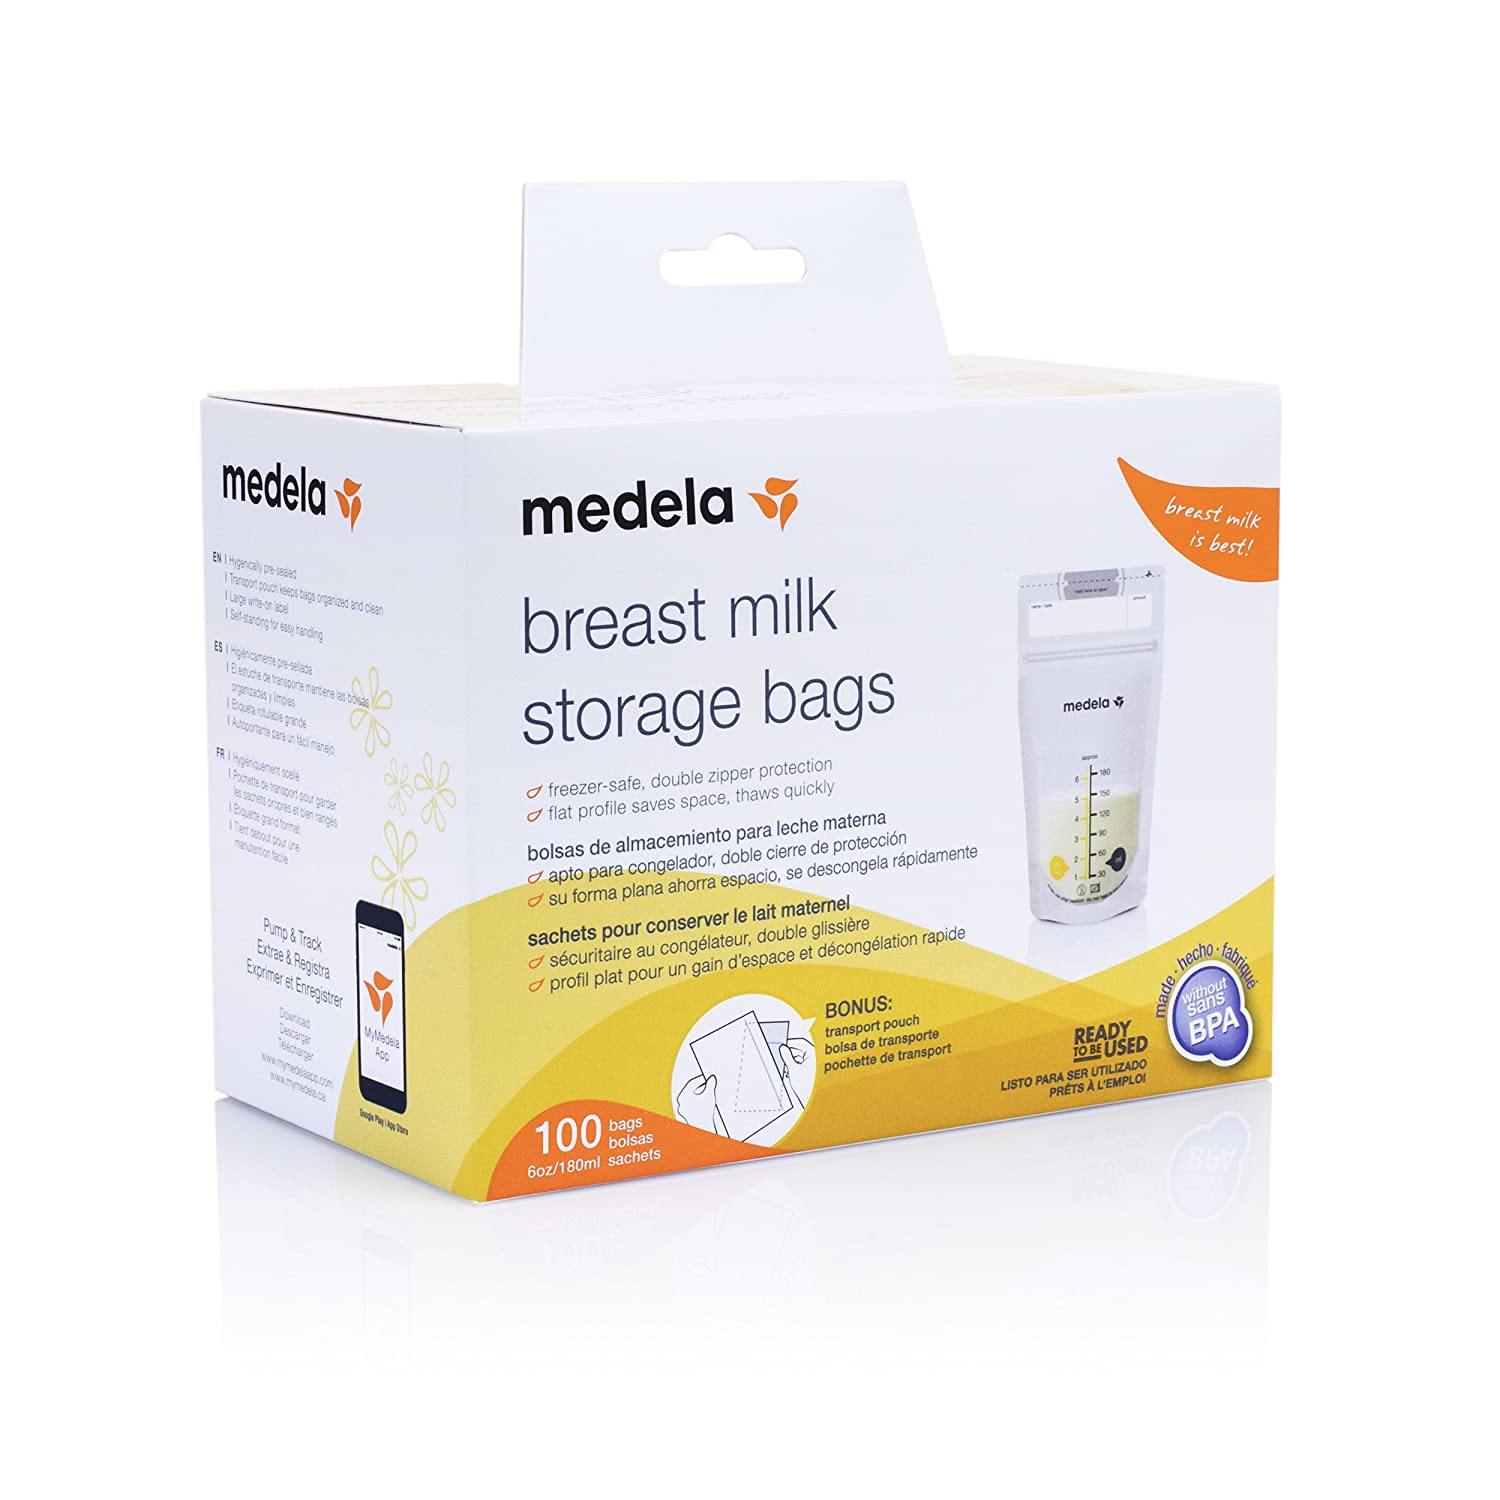 Medela, Breast Milk Storage Bags, Ready to Use, Milk Storage Bags for Breastfeeding, Self-Standing...